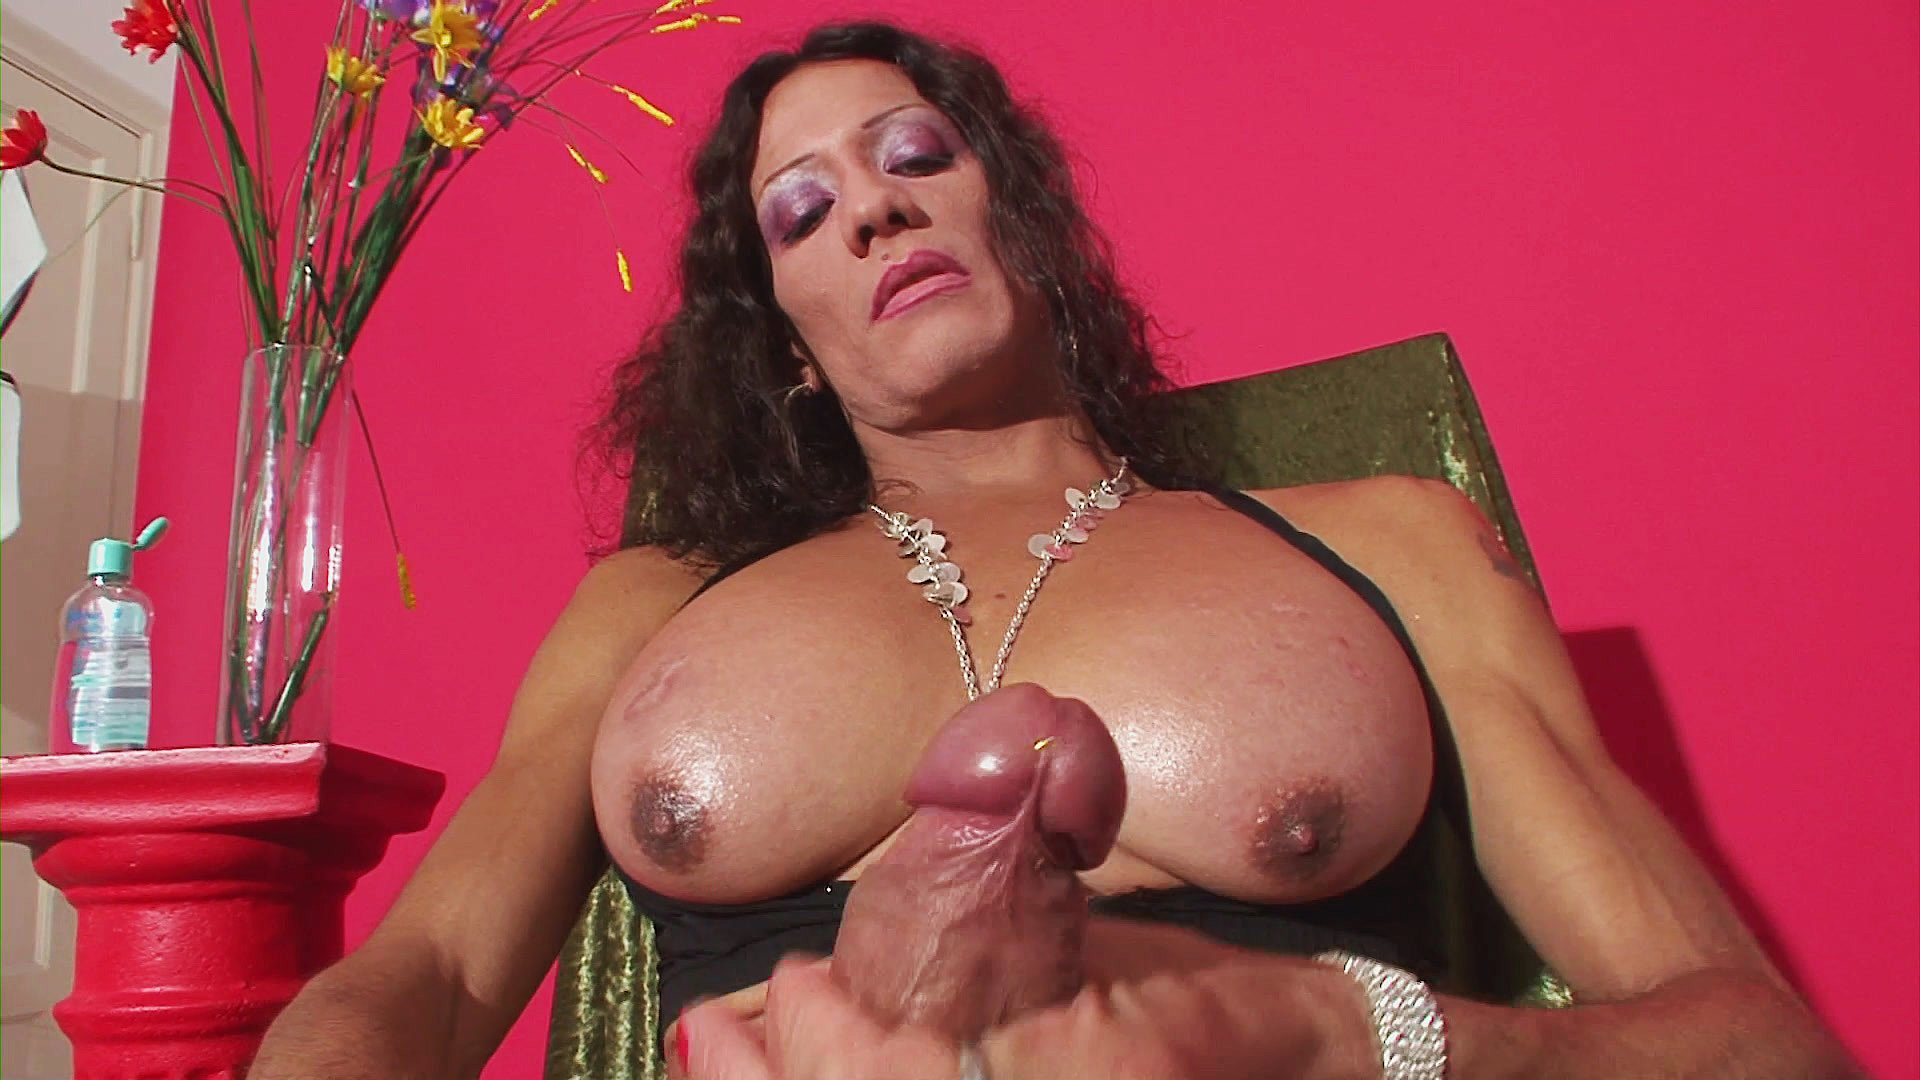 males transexuals she Latin